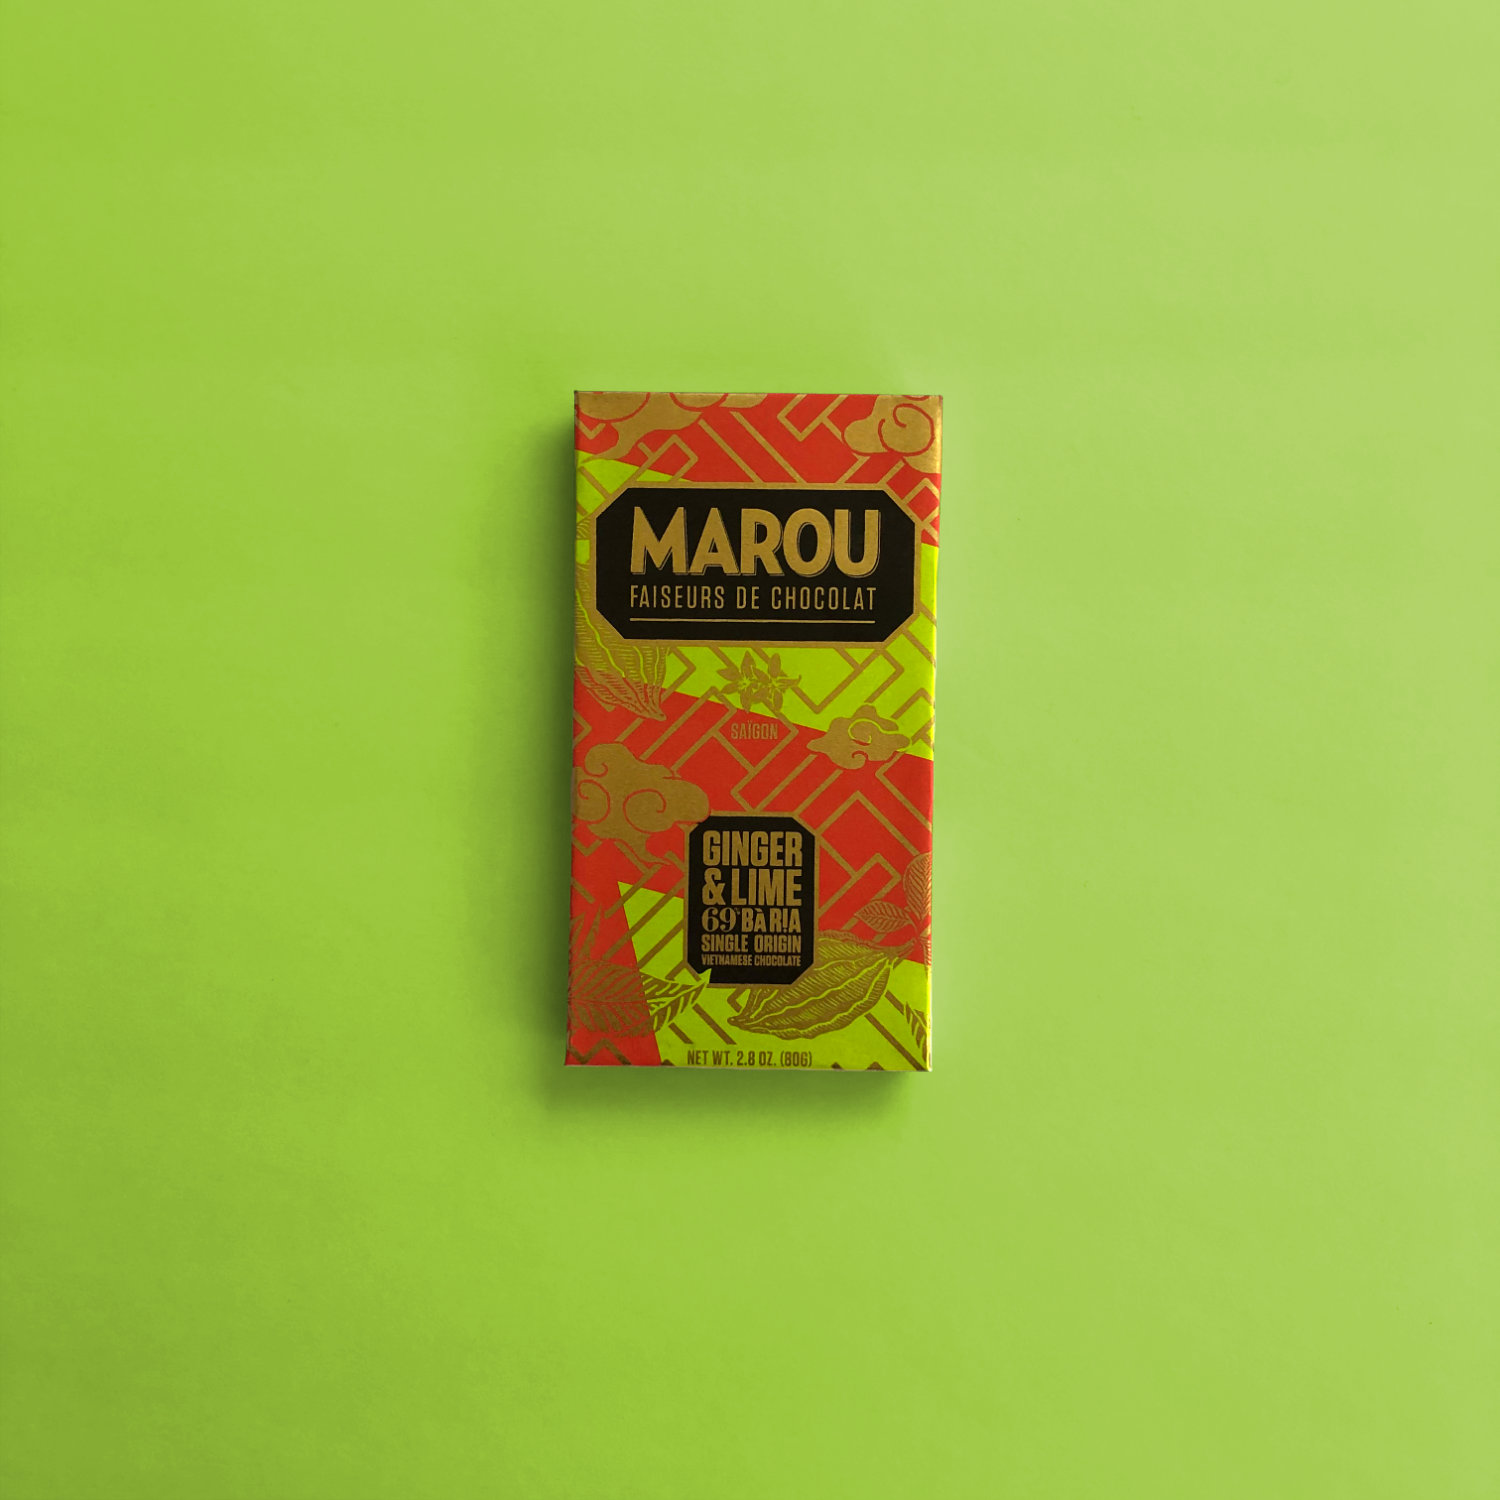 69-dark-chocolate-ginger-lime-marou